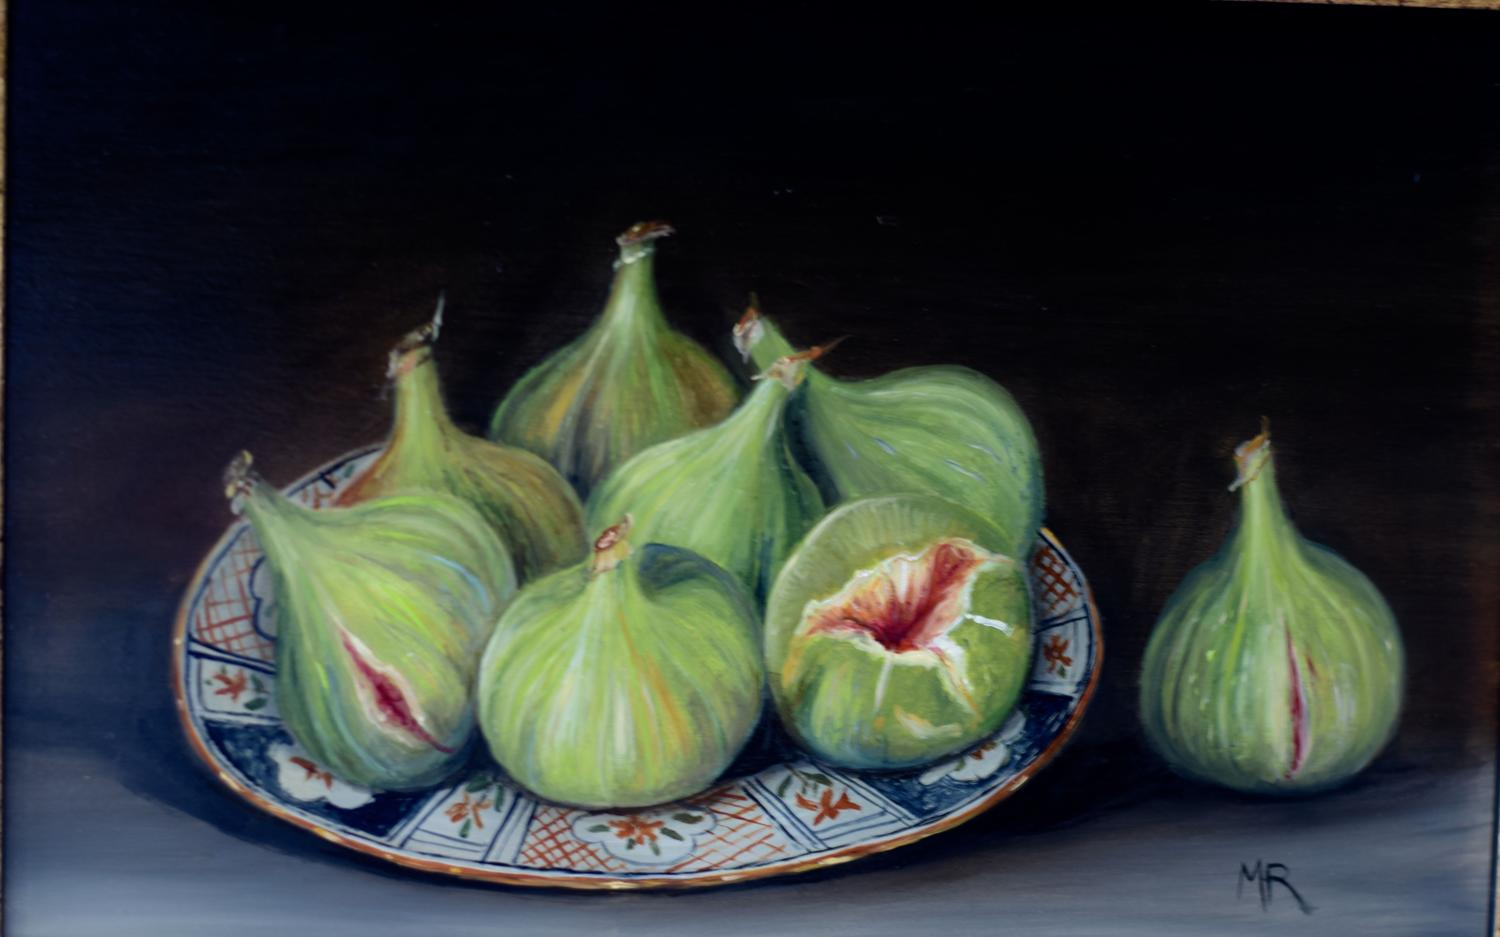 Plate of green figs